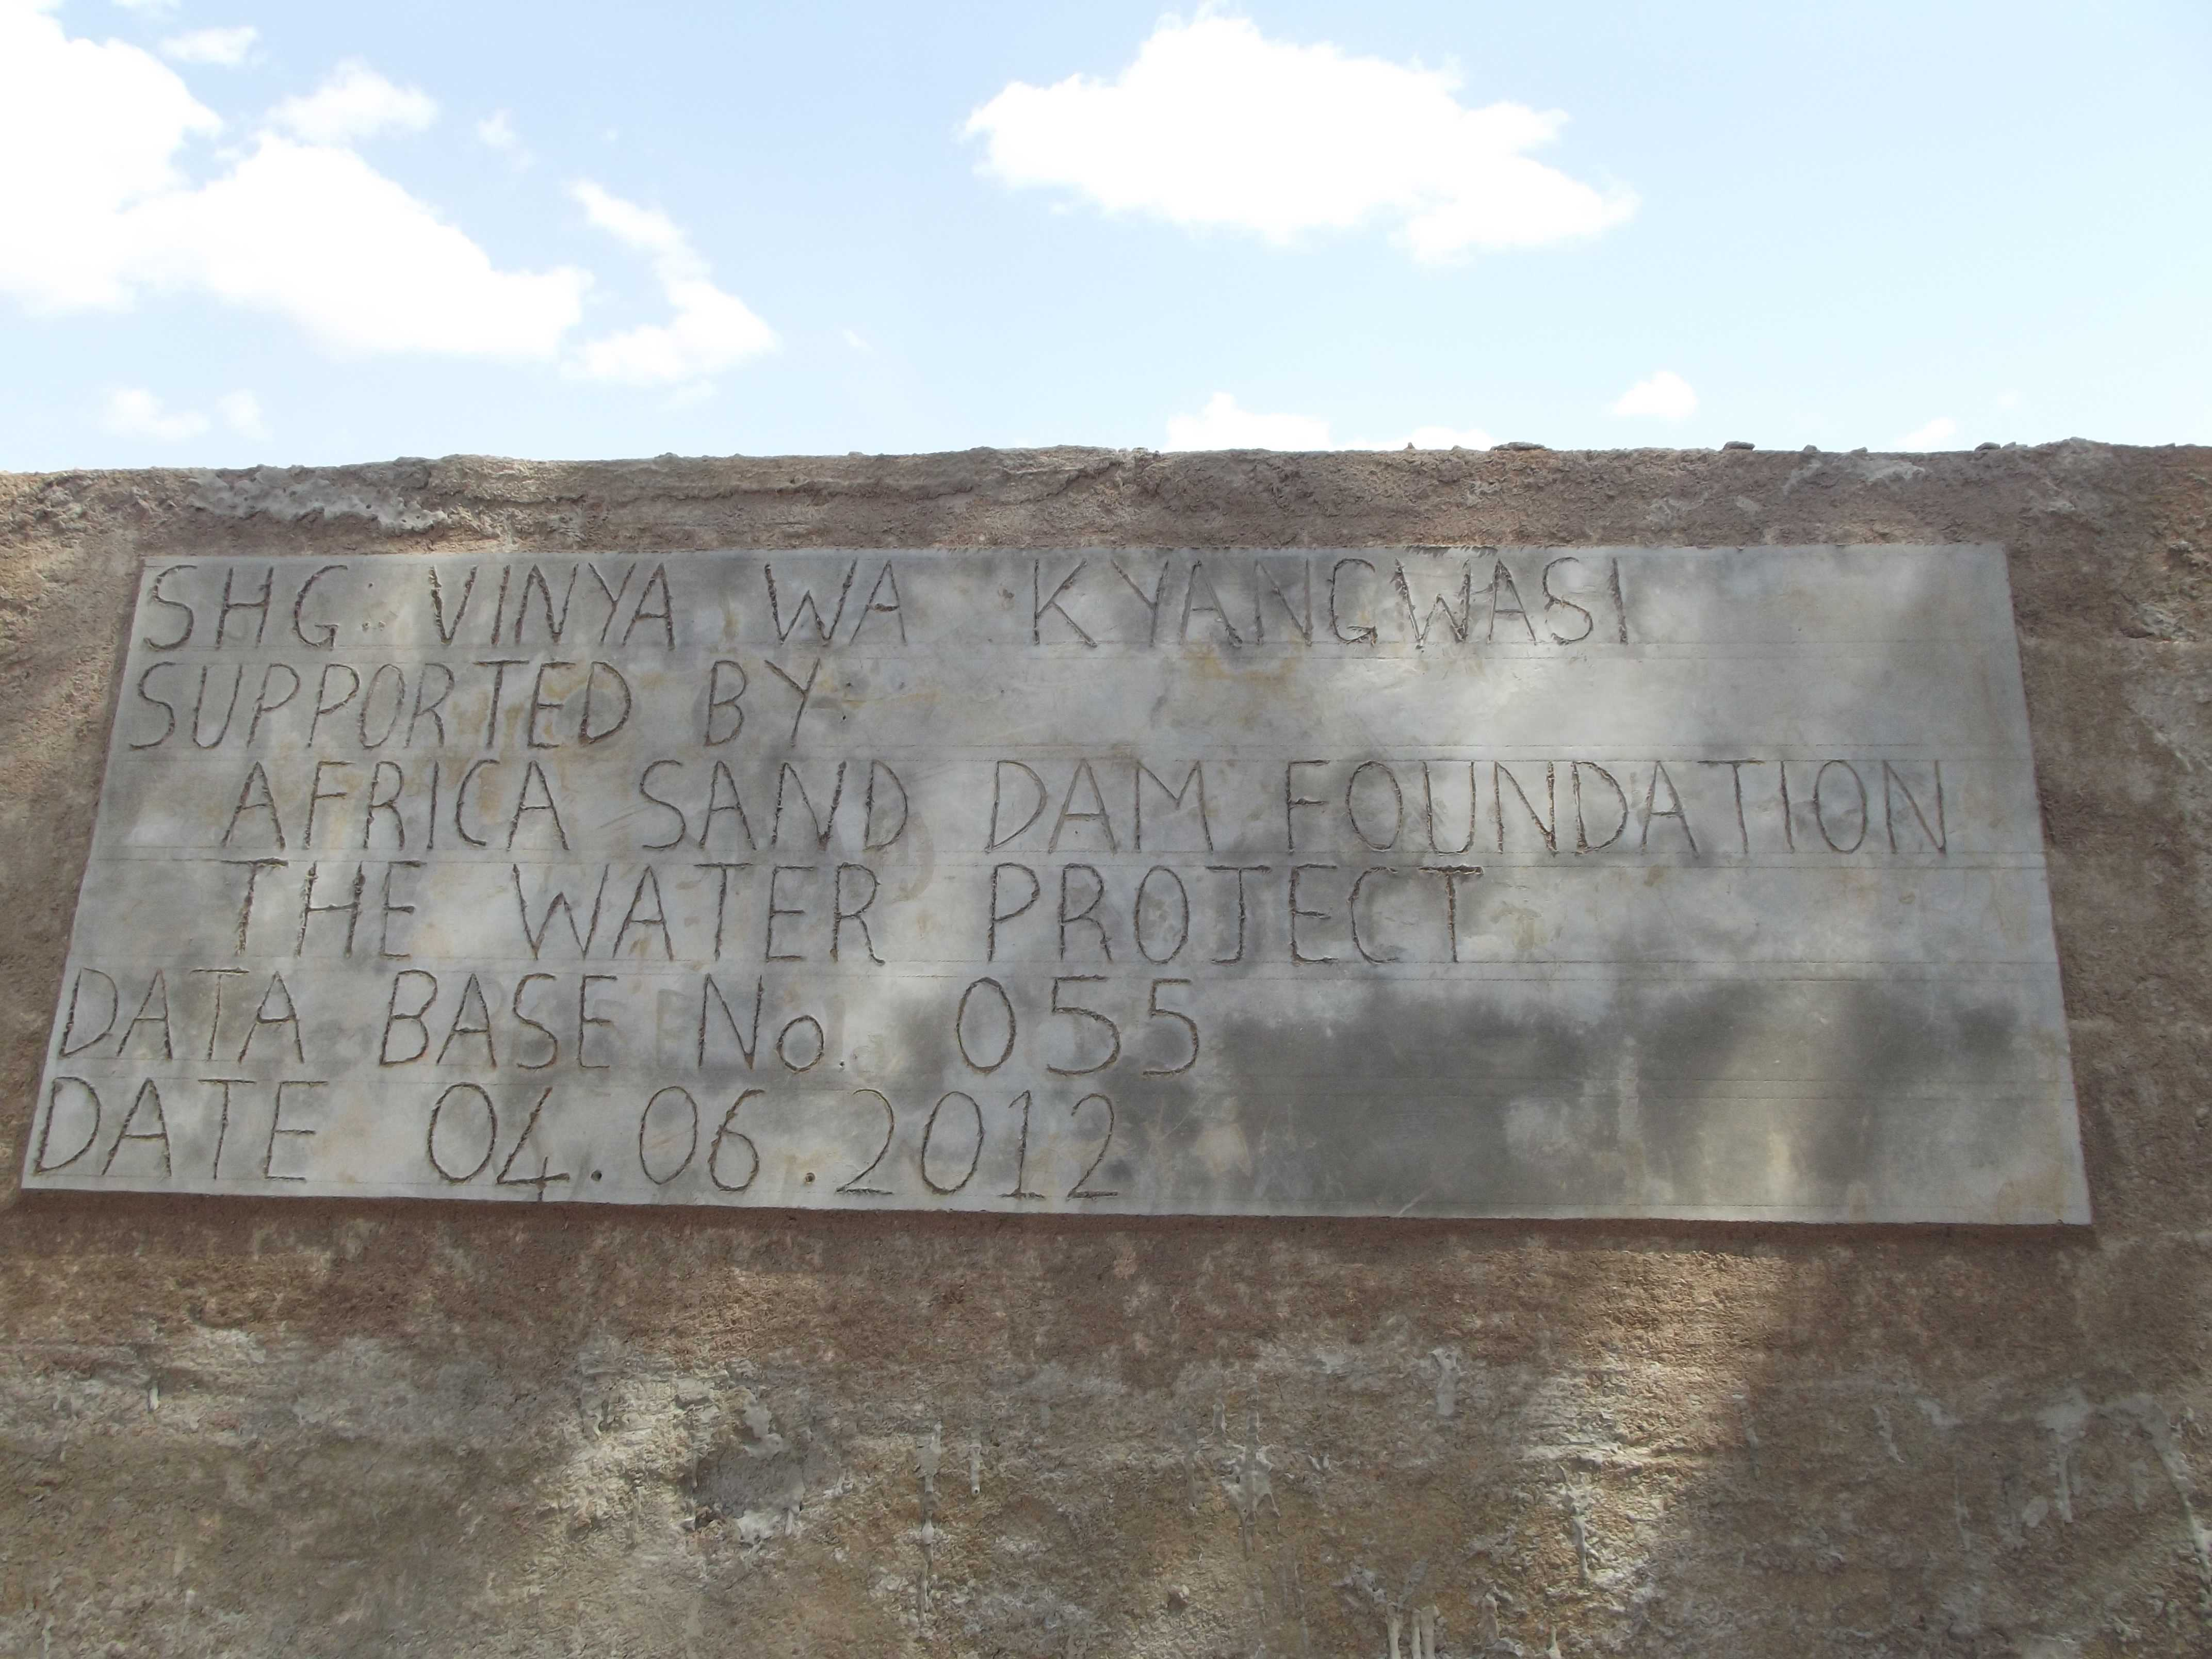 The Water Project : vinya-wa-kyangwasi-shg-sd-12018-dls-ac-june-2012-21-3